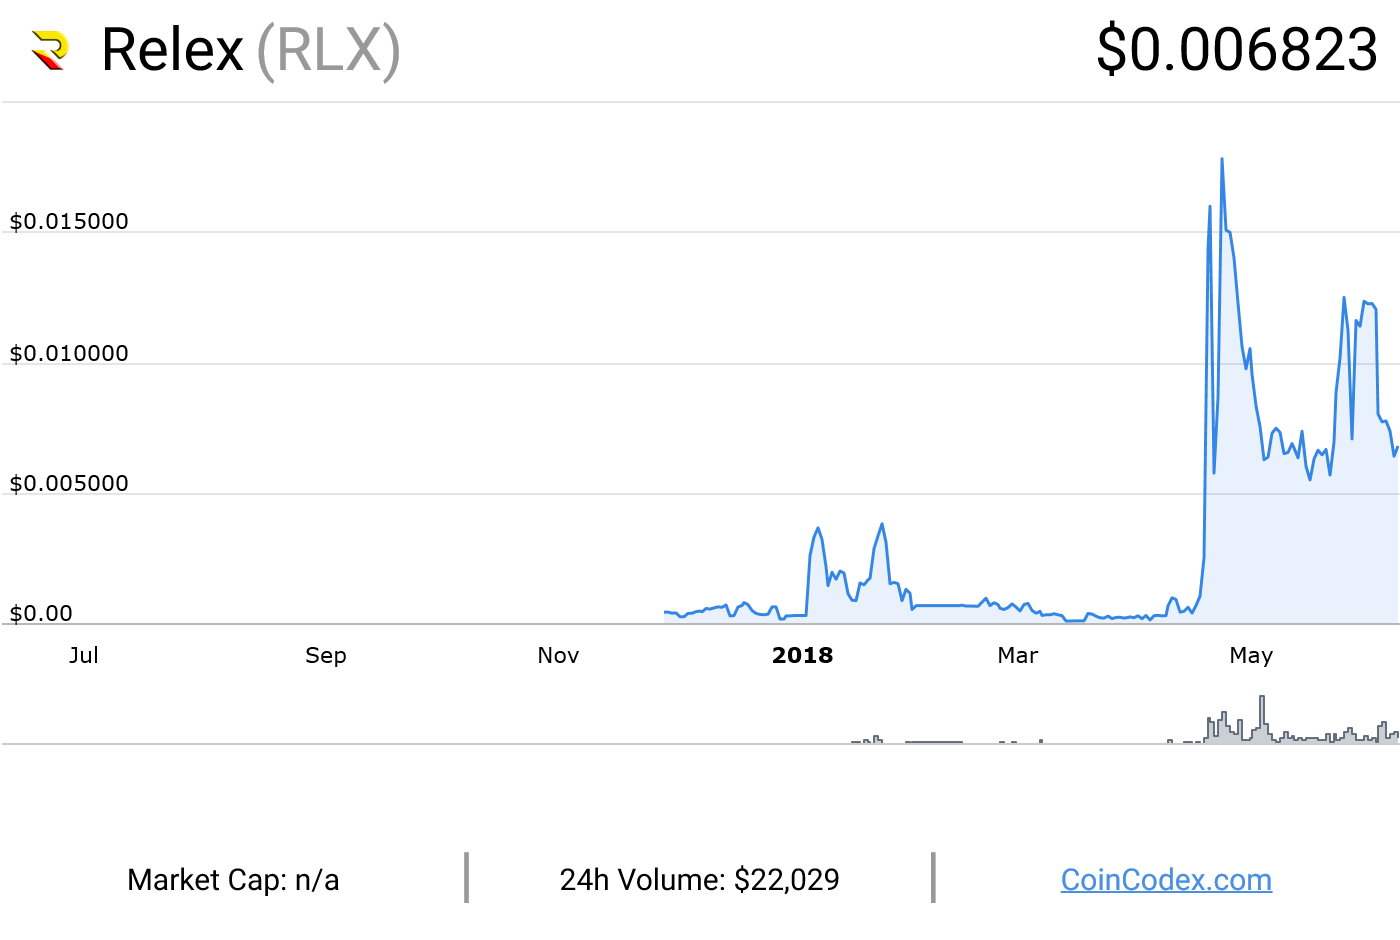 C:\Users\absolute393\Downloads\coincodex.com-Relex-graph.png